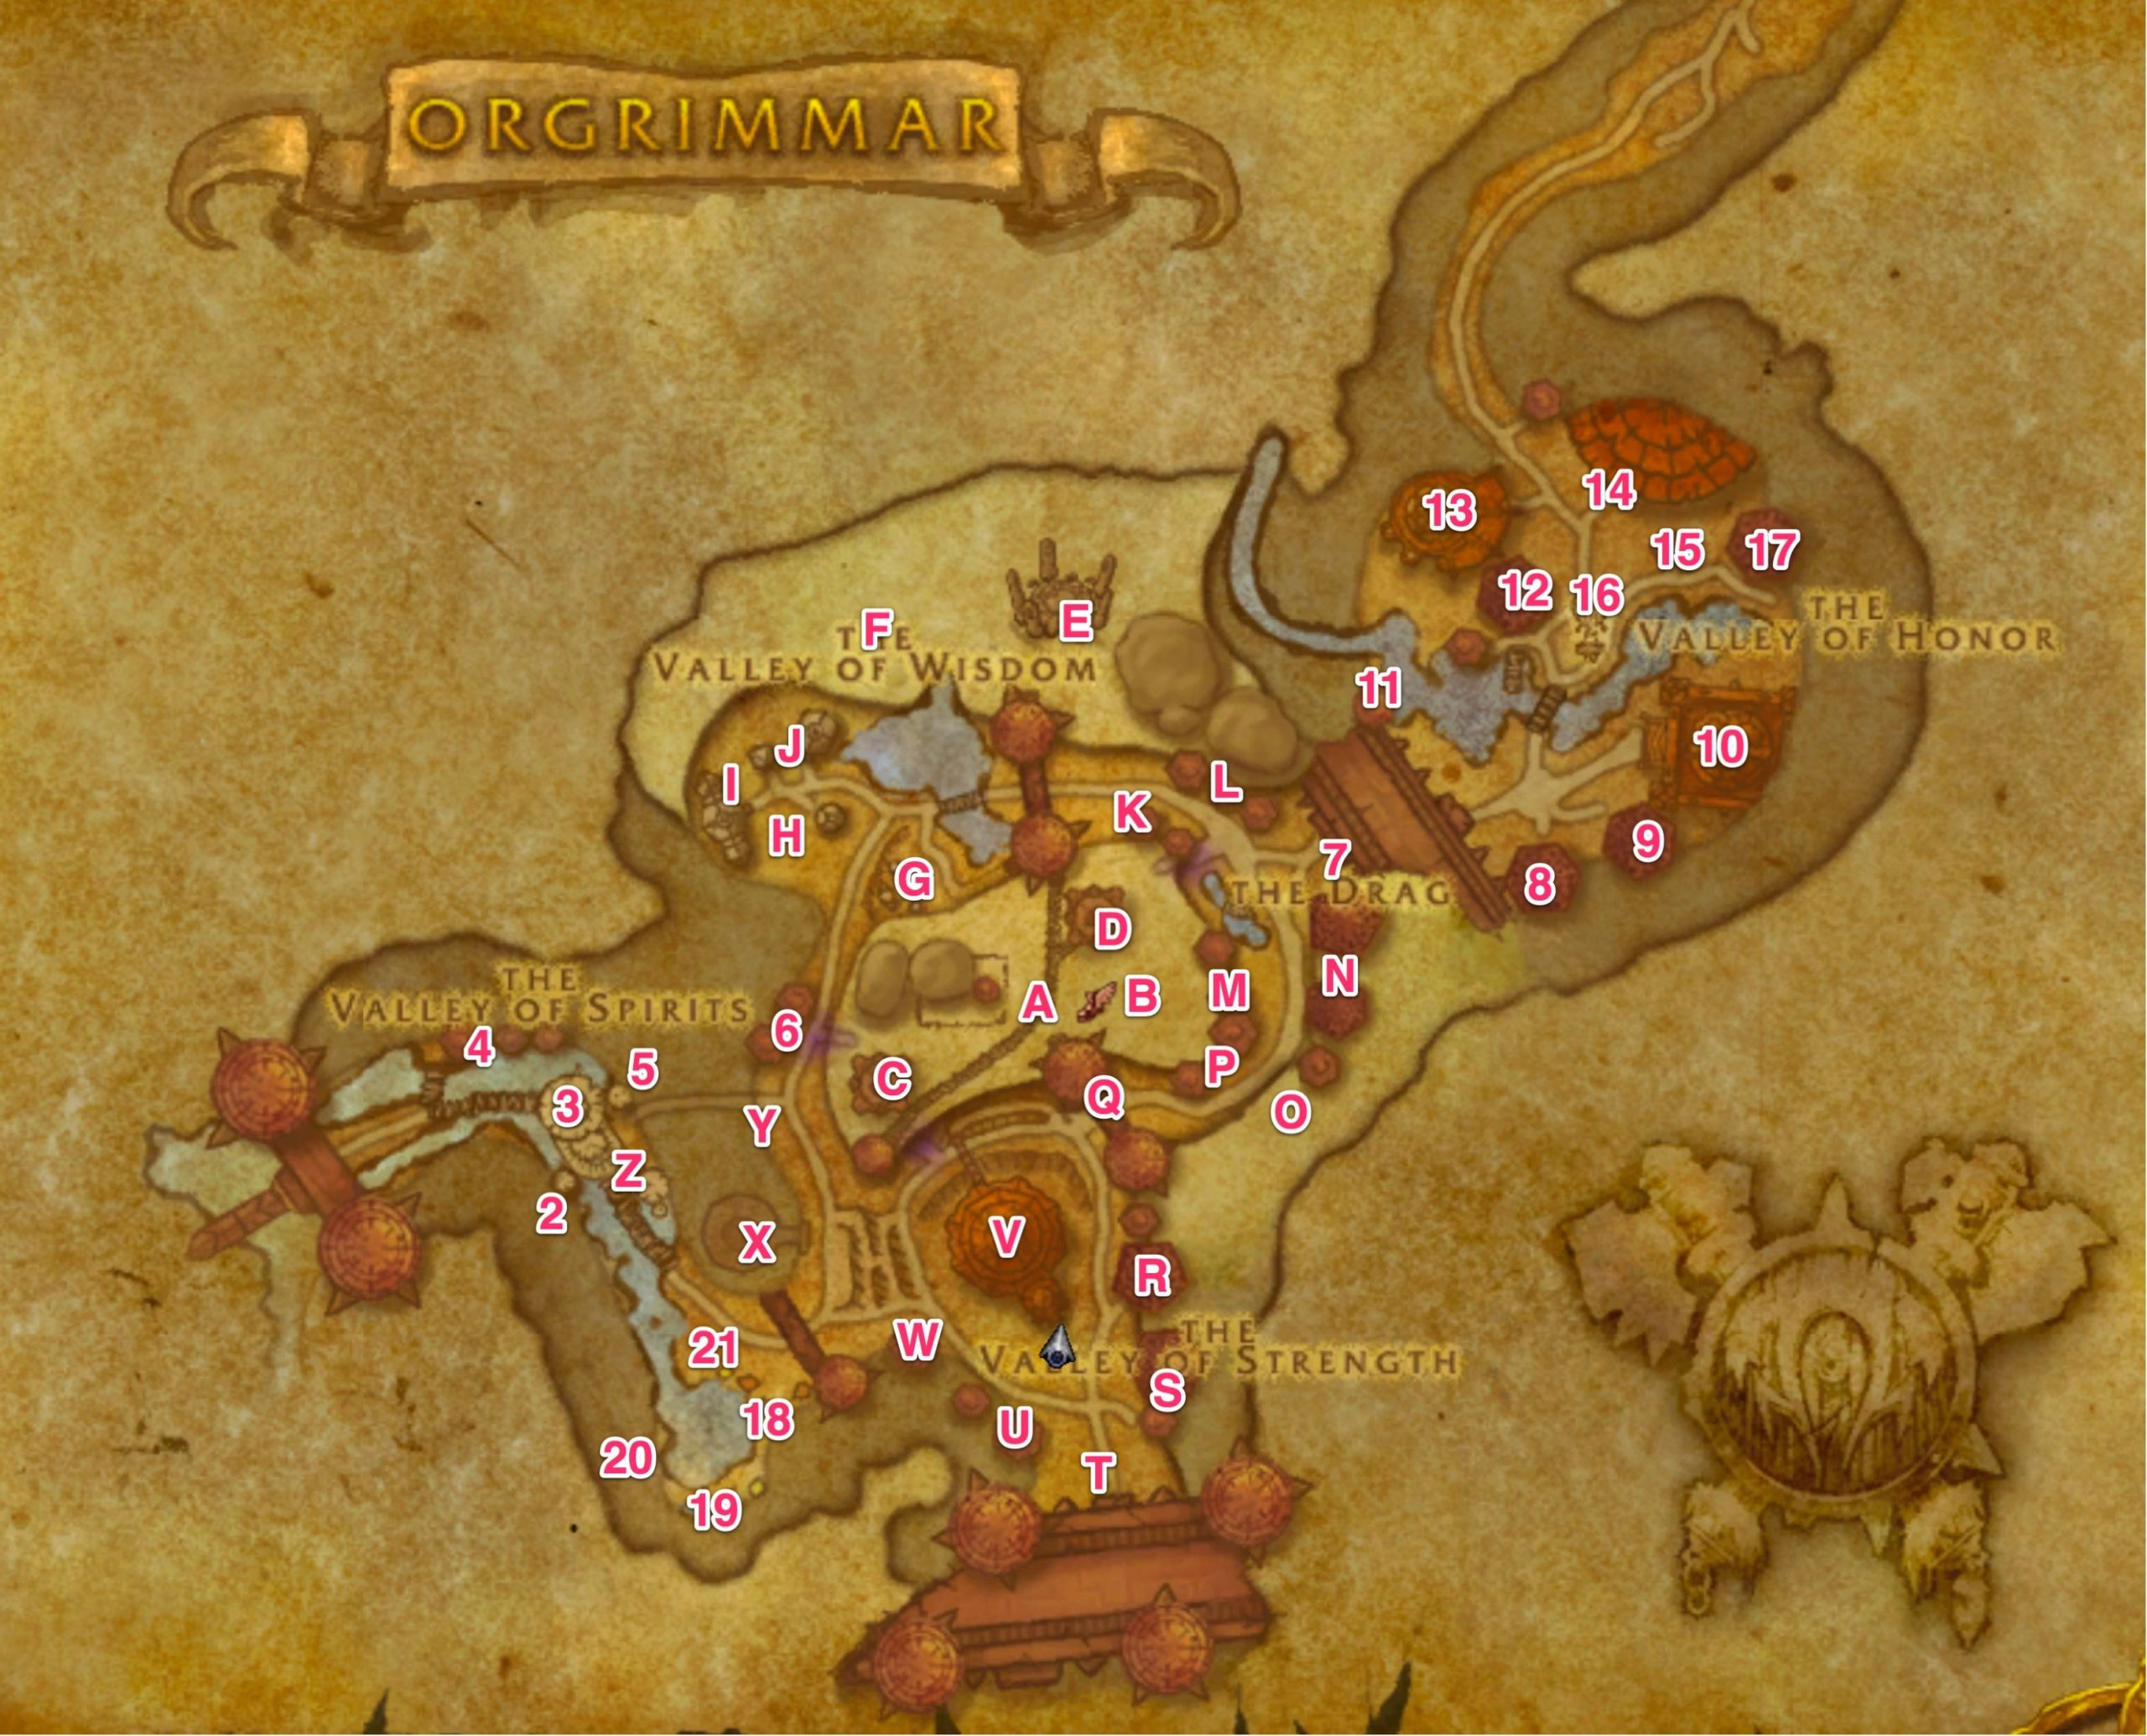 Map of Orgrimmar Vendors, Trainers and NPCs